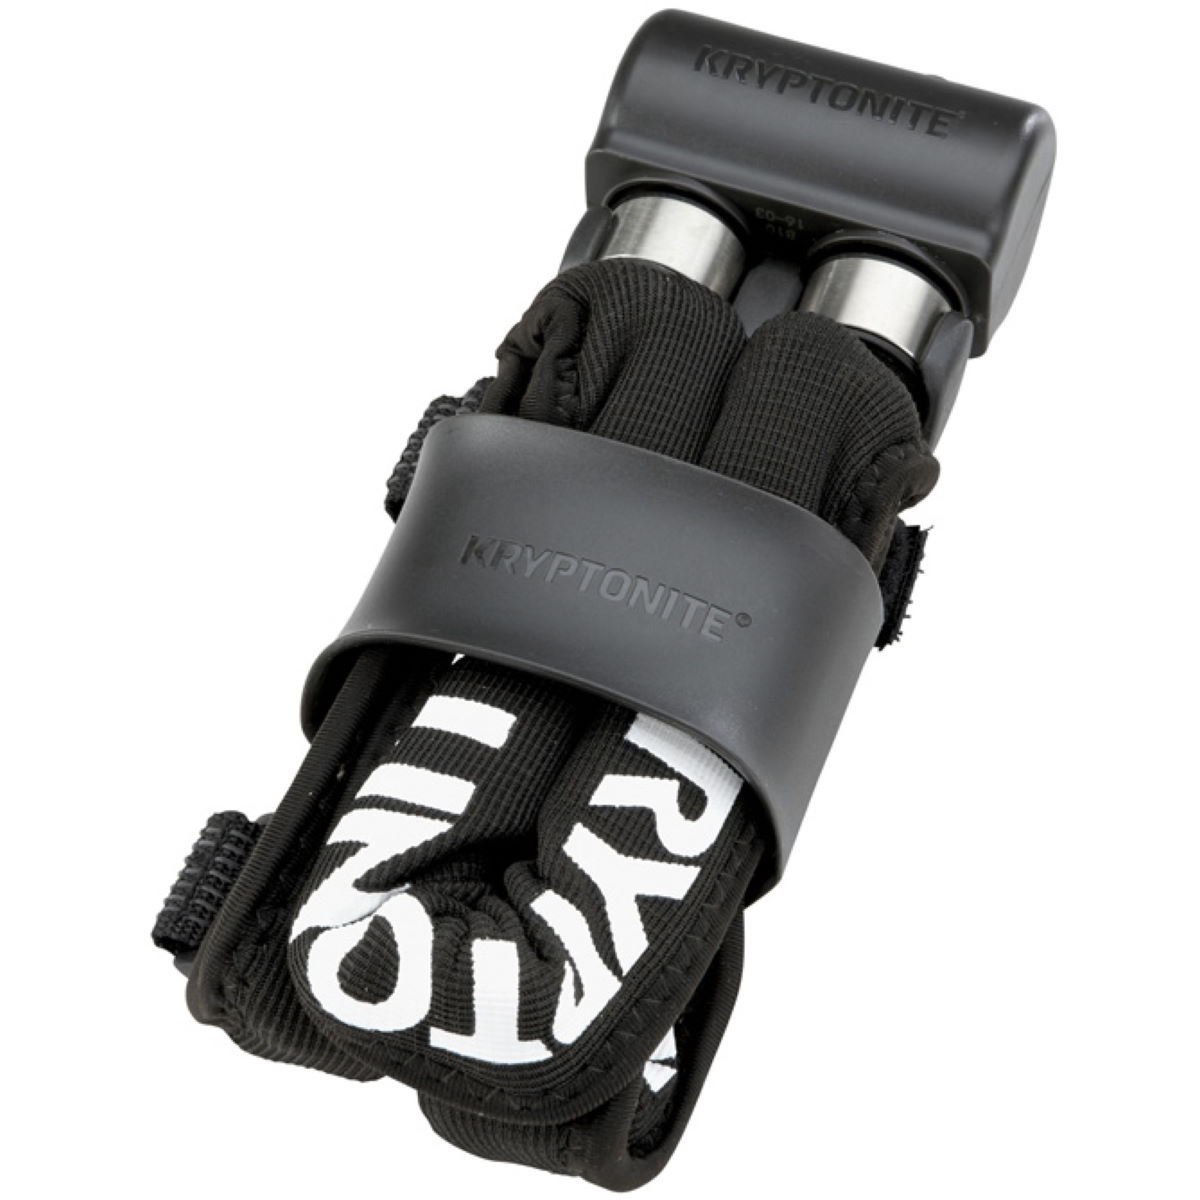 Kryptonite keeper folding lock 810 internal black gk002345